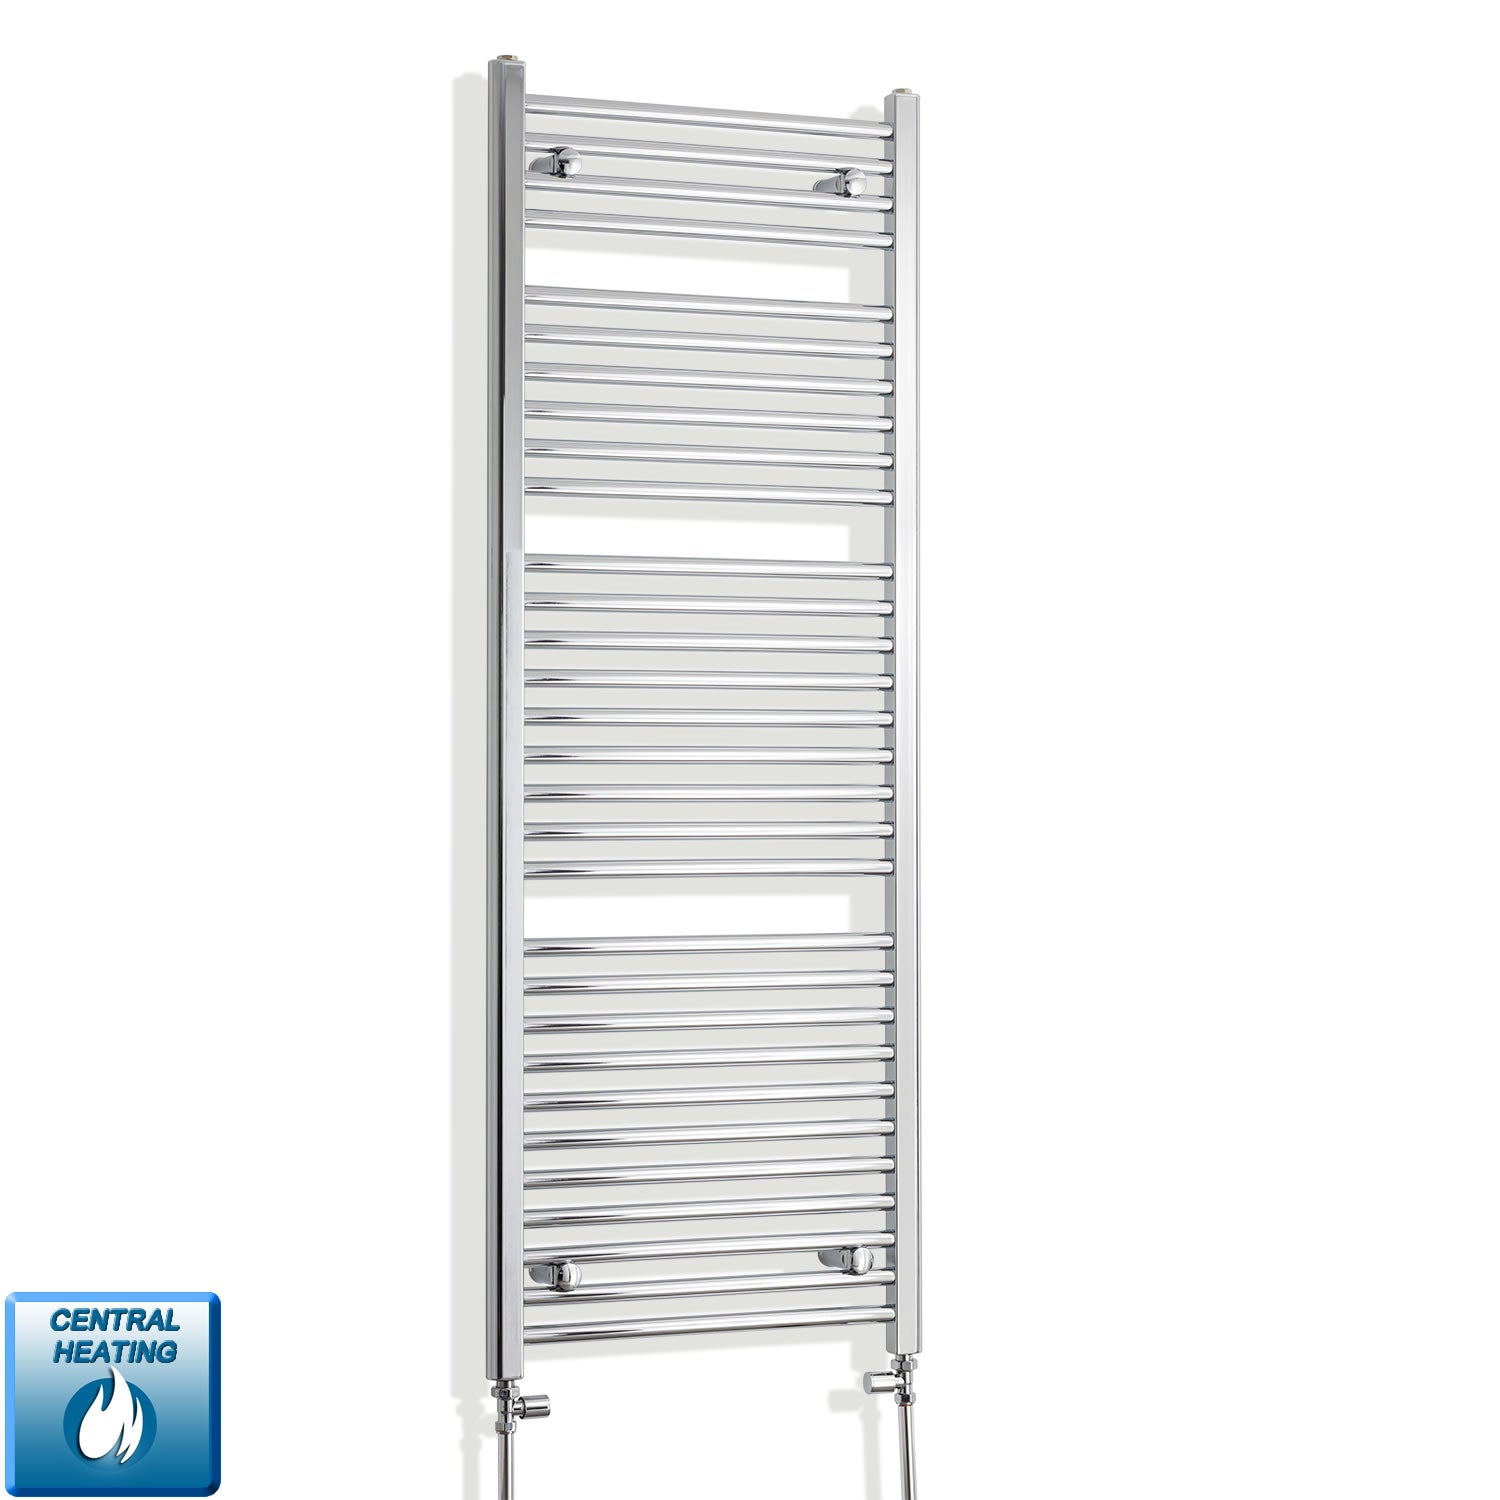 550mm Wide 1500mm High Straight Chrome Heated Towel Rail Radiator HTR Central Heating,With Straight Valve